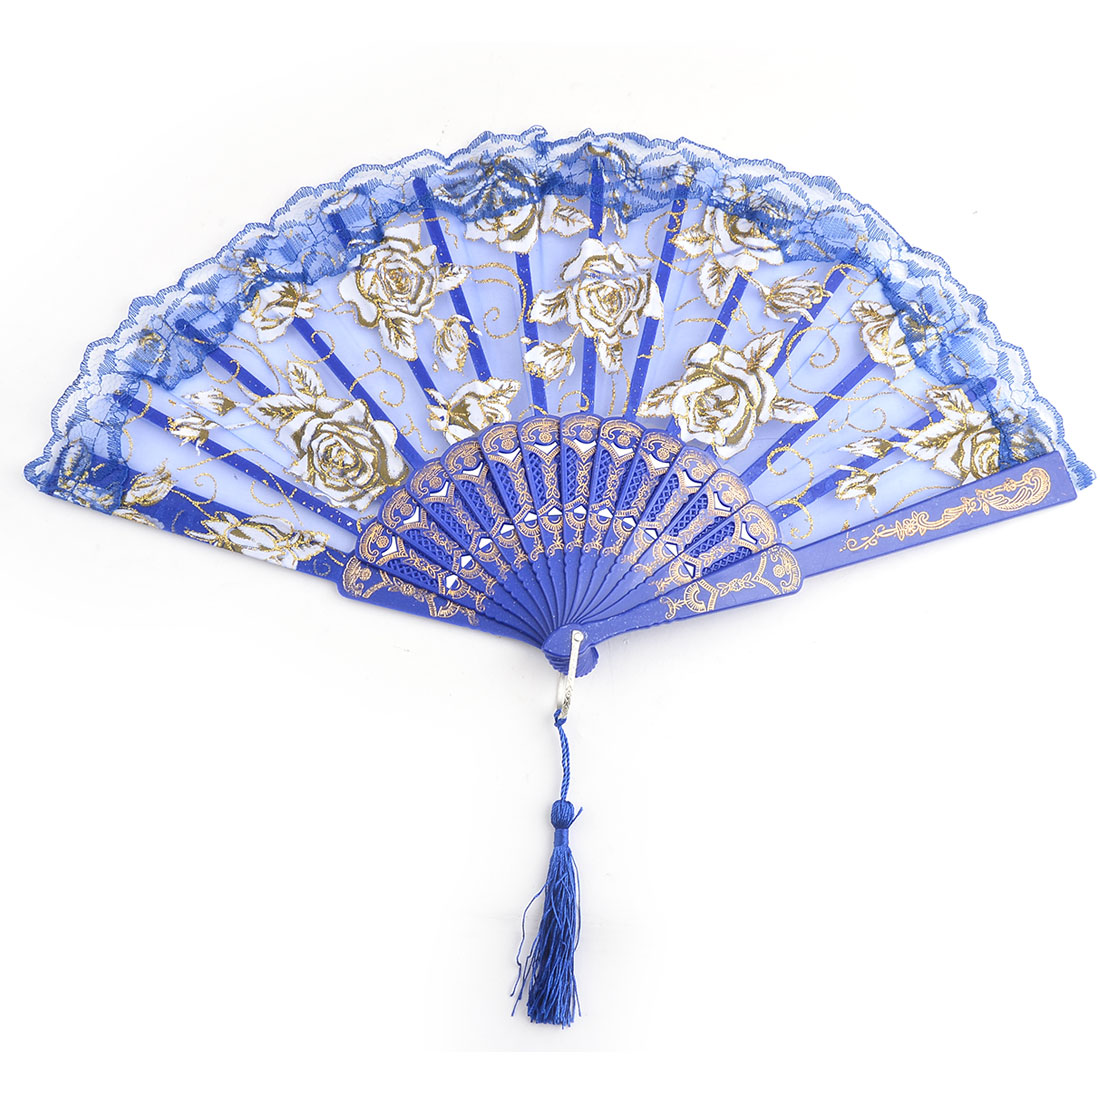 Women Dancer Plastic Frame Rose Pattern Folding Dancing Hand Fan Dark Blue 23.8cm Length